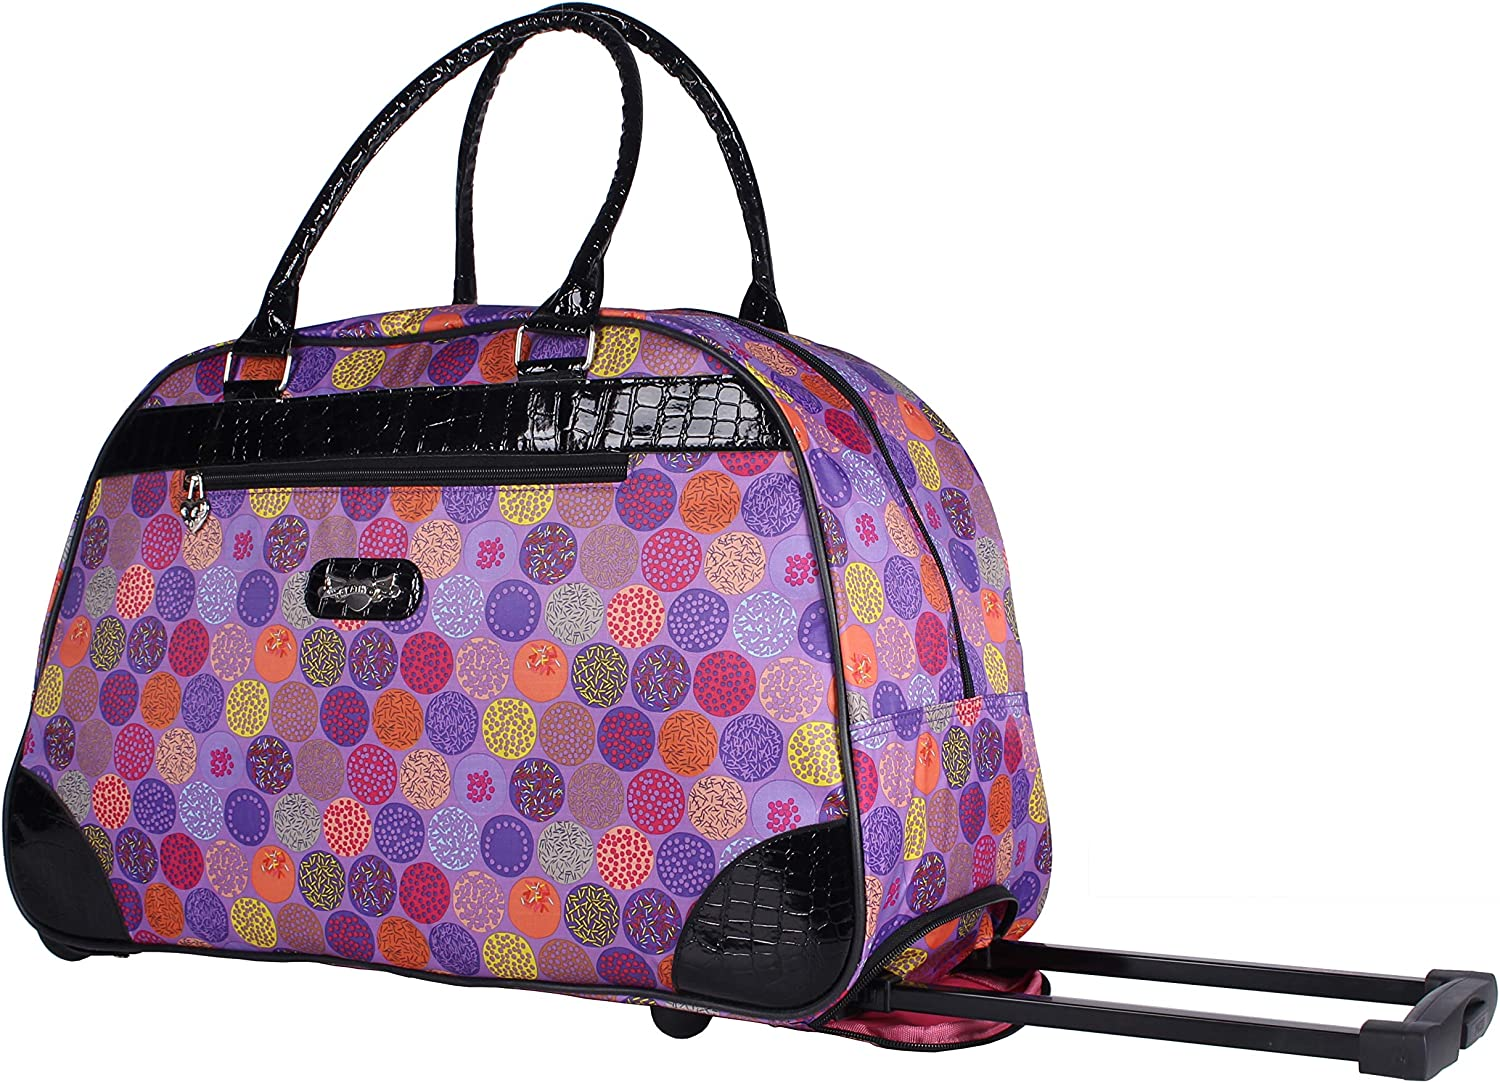 Kathy Van Zeeland Designer 22 Inch Carry On - Weekender Overnight Business Travel Luggage - Lightweight Printed 2-Rolling Spinner Wheels Duffel Bag (Pop up Lavander)